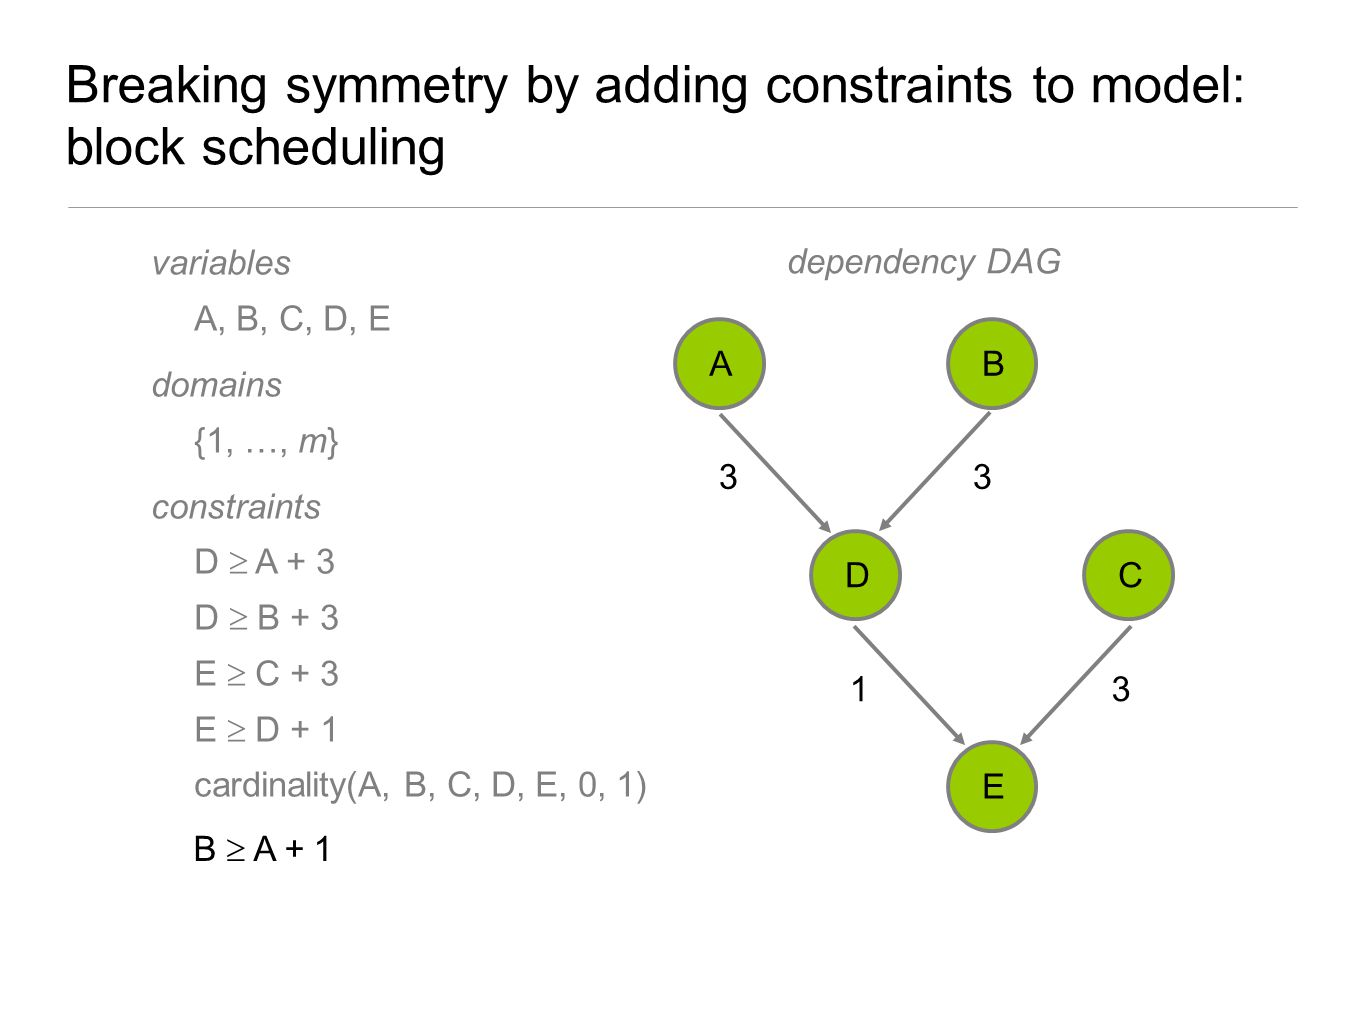 Breaking symmetry by adding constraints to model: block scheduling